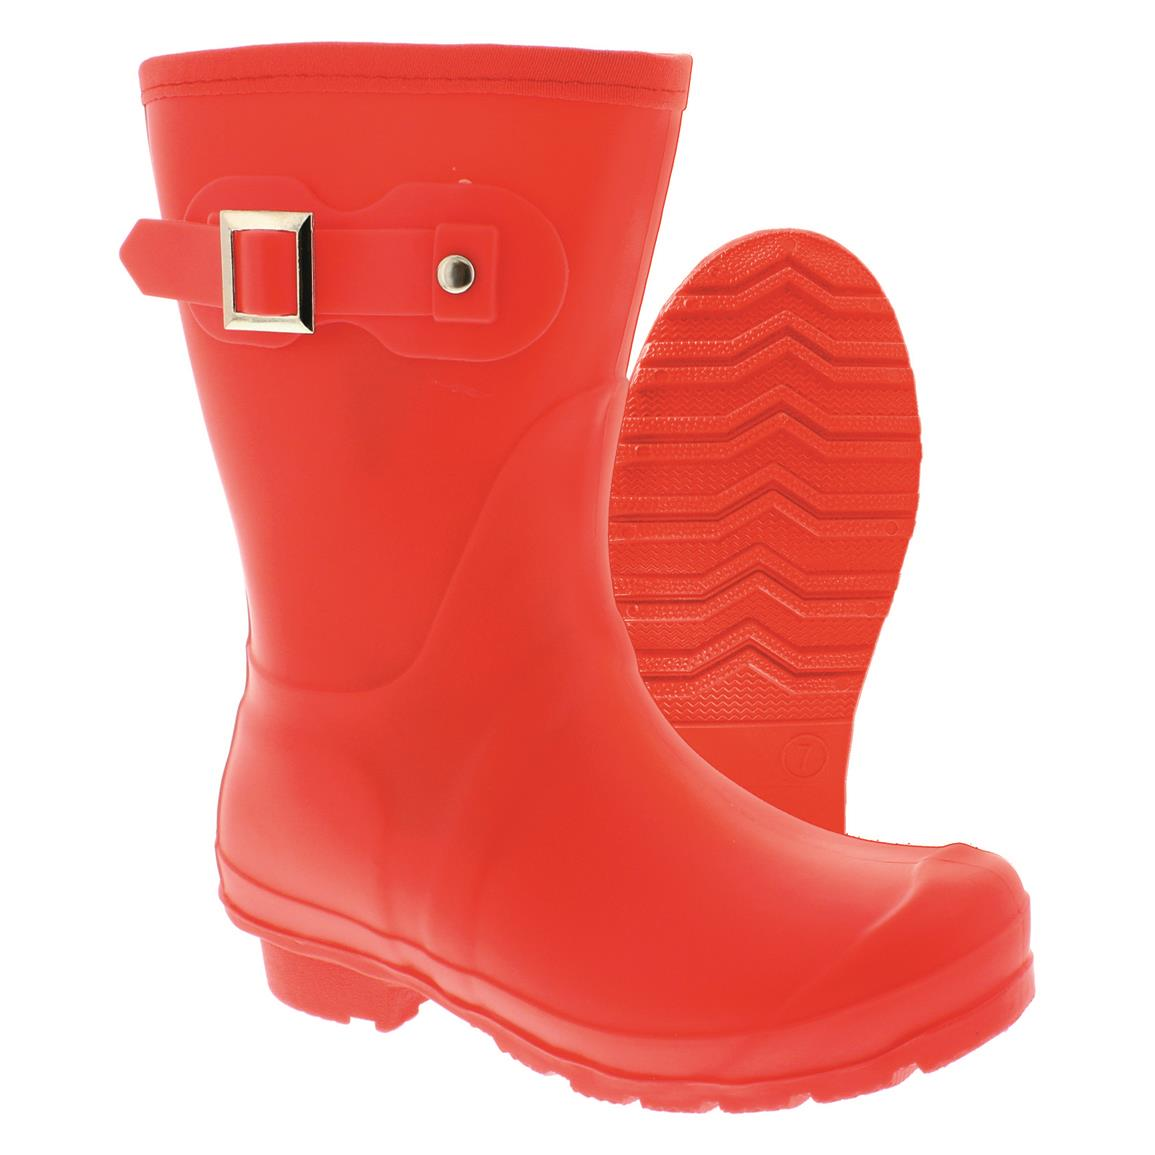 "Itasca Women's 10"" Rain Lake PVC Rain Boots, Watermelon"